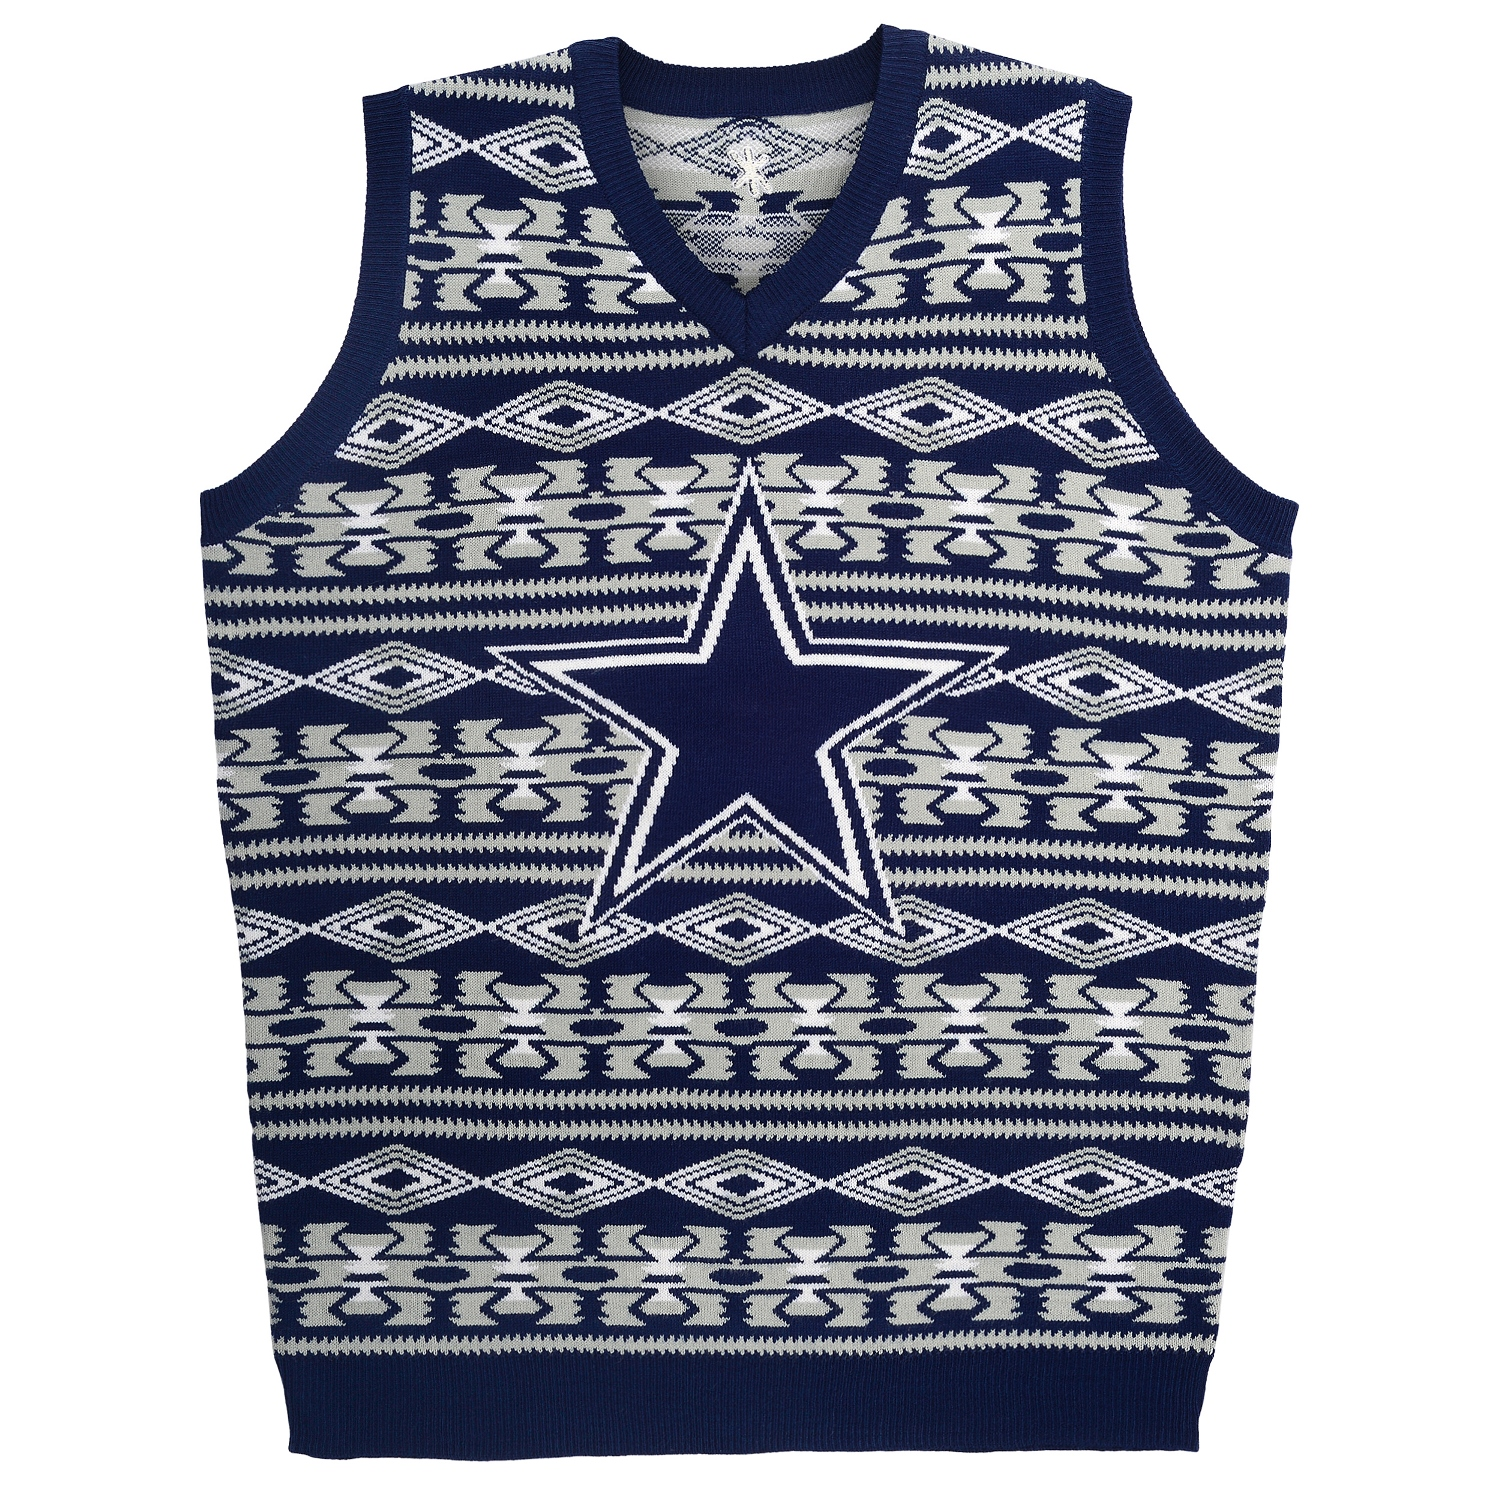 0152a159ec dallas cowboys klew patches ugly ugly christmas sweaters sweater s ...